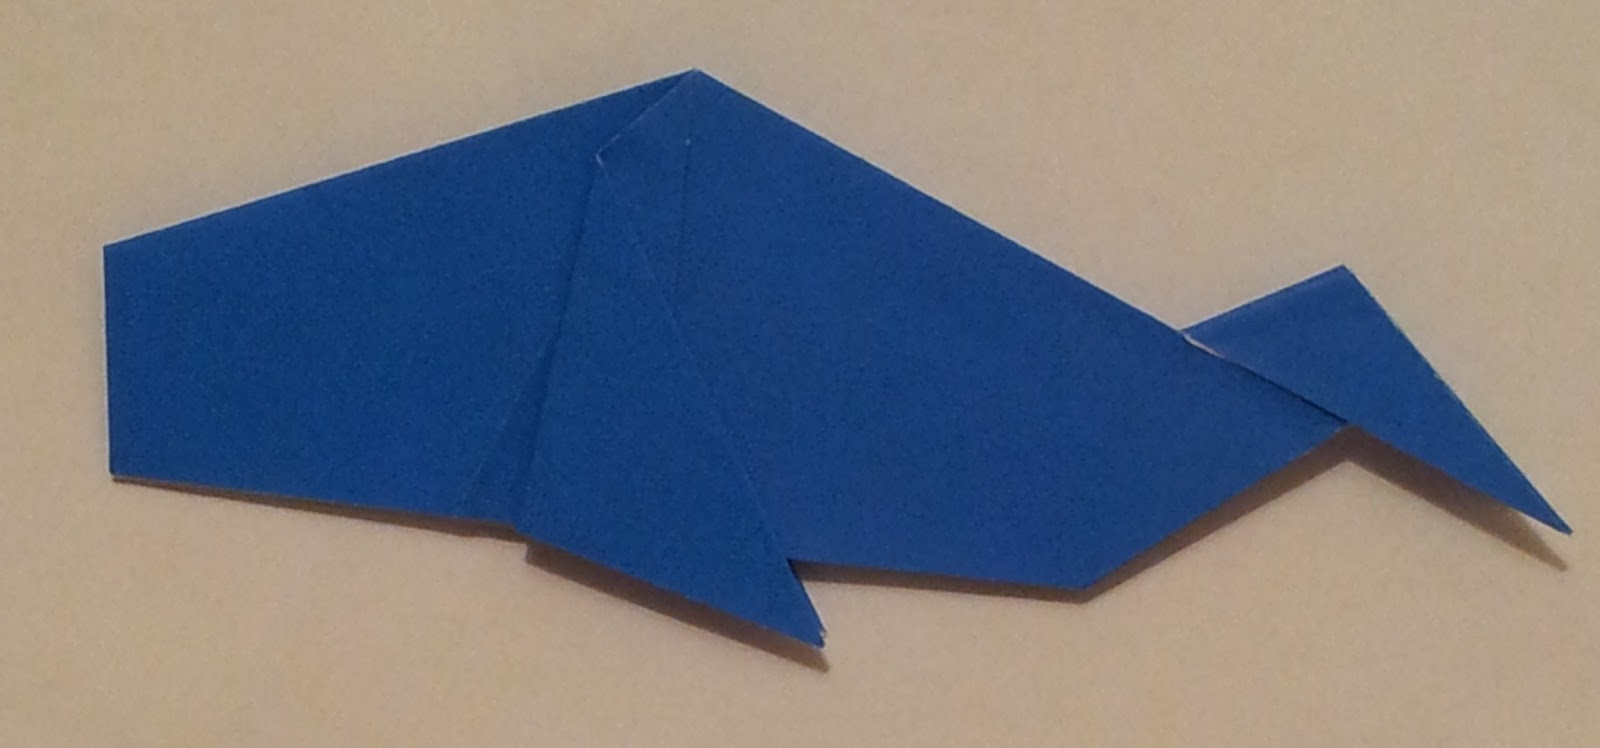 Origami Majestic Whale